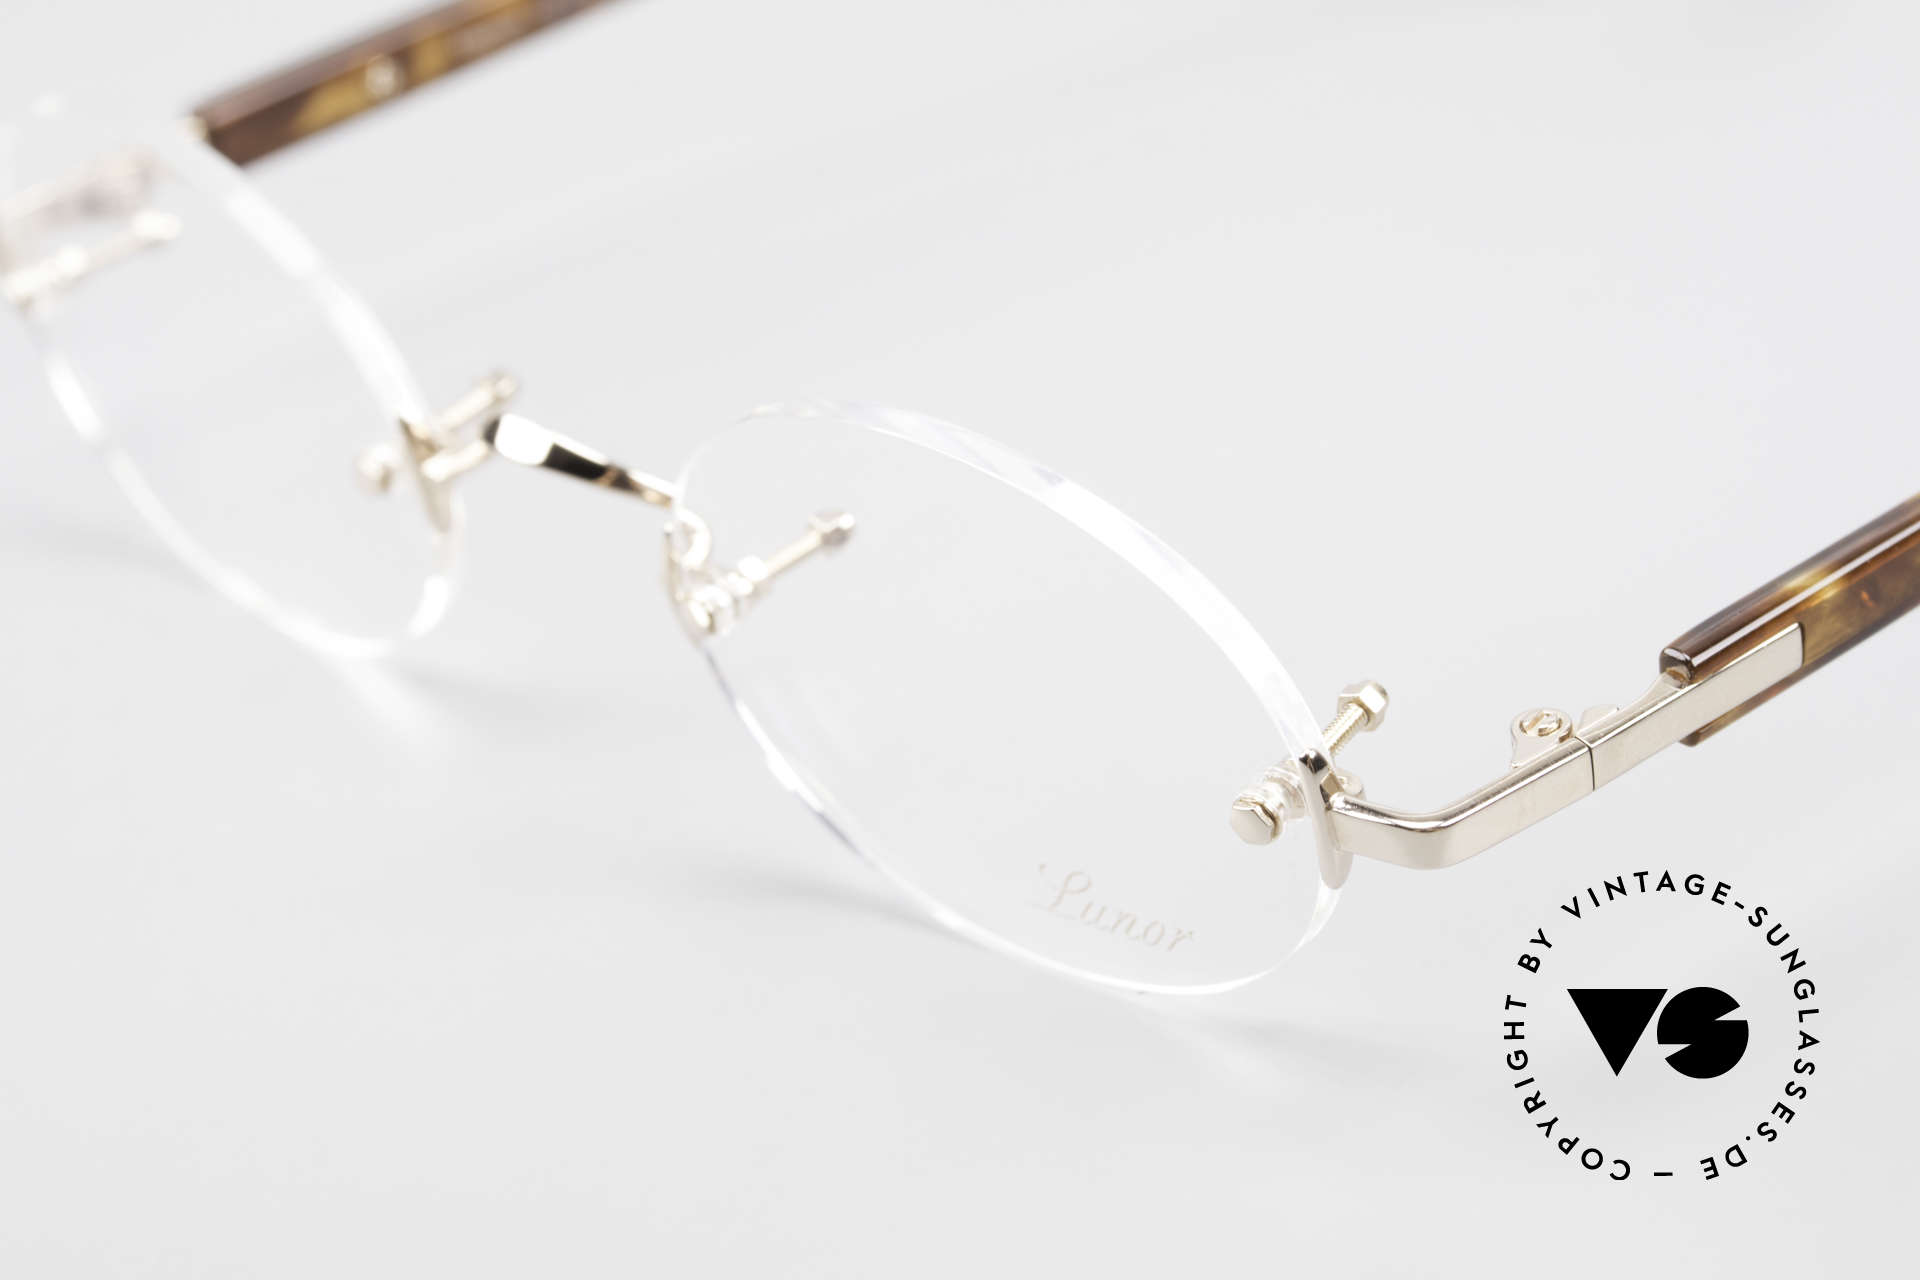 Lunor Classic Oval GP Oval Rimless Frame Gold Plated, from the 2015's collection, but in a well-known quality, Made for Men and Women